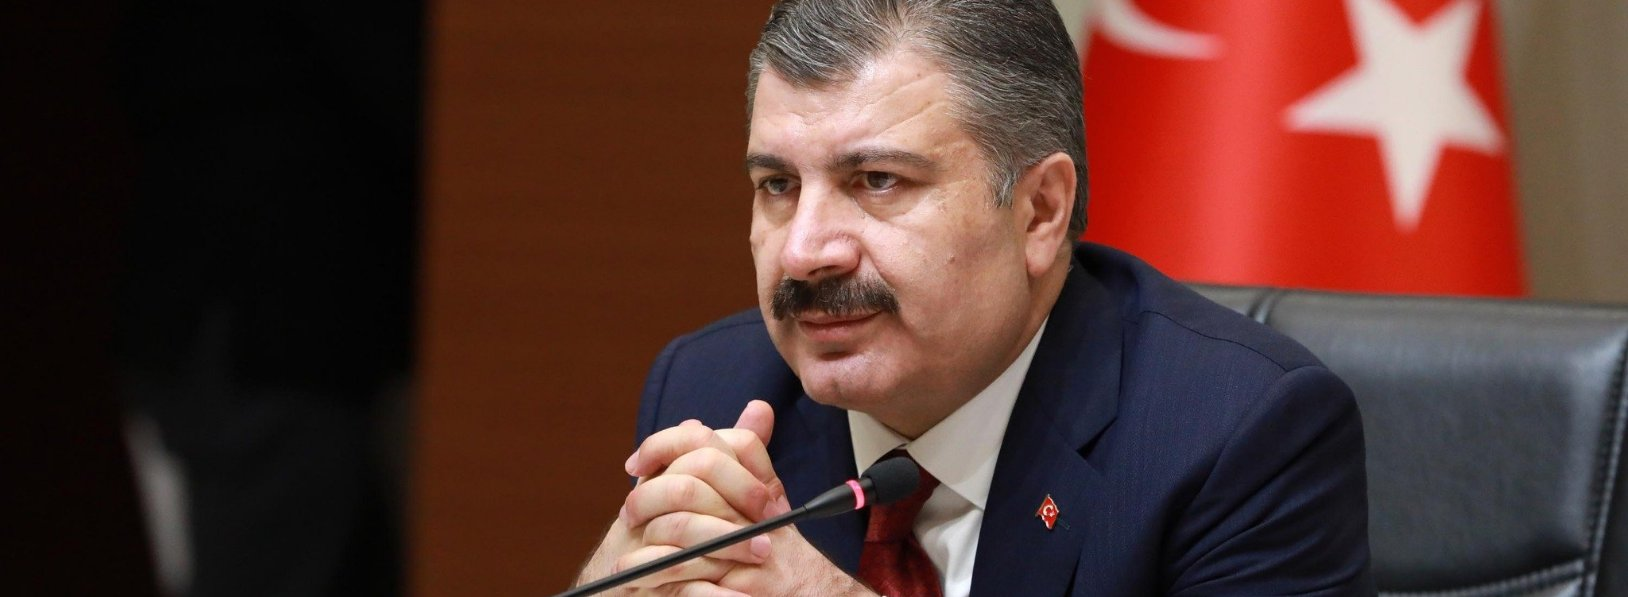 Minister of Health Koca: Under no circumstances has an additional amount of money been given to the intermediary firm